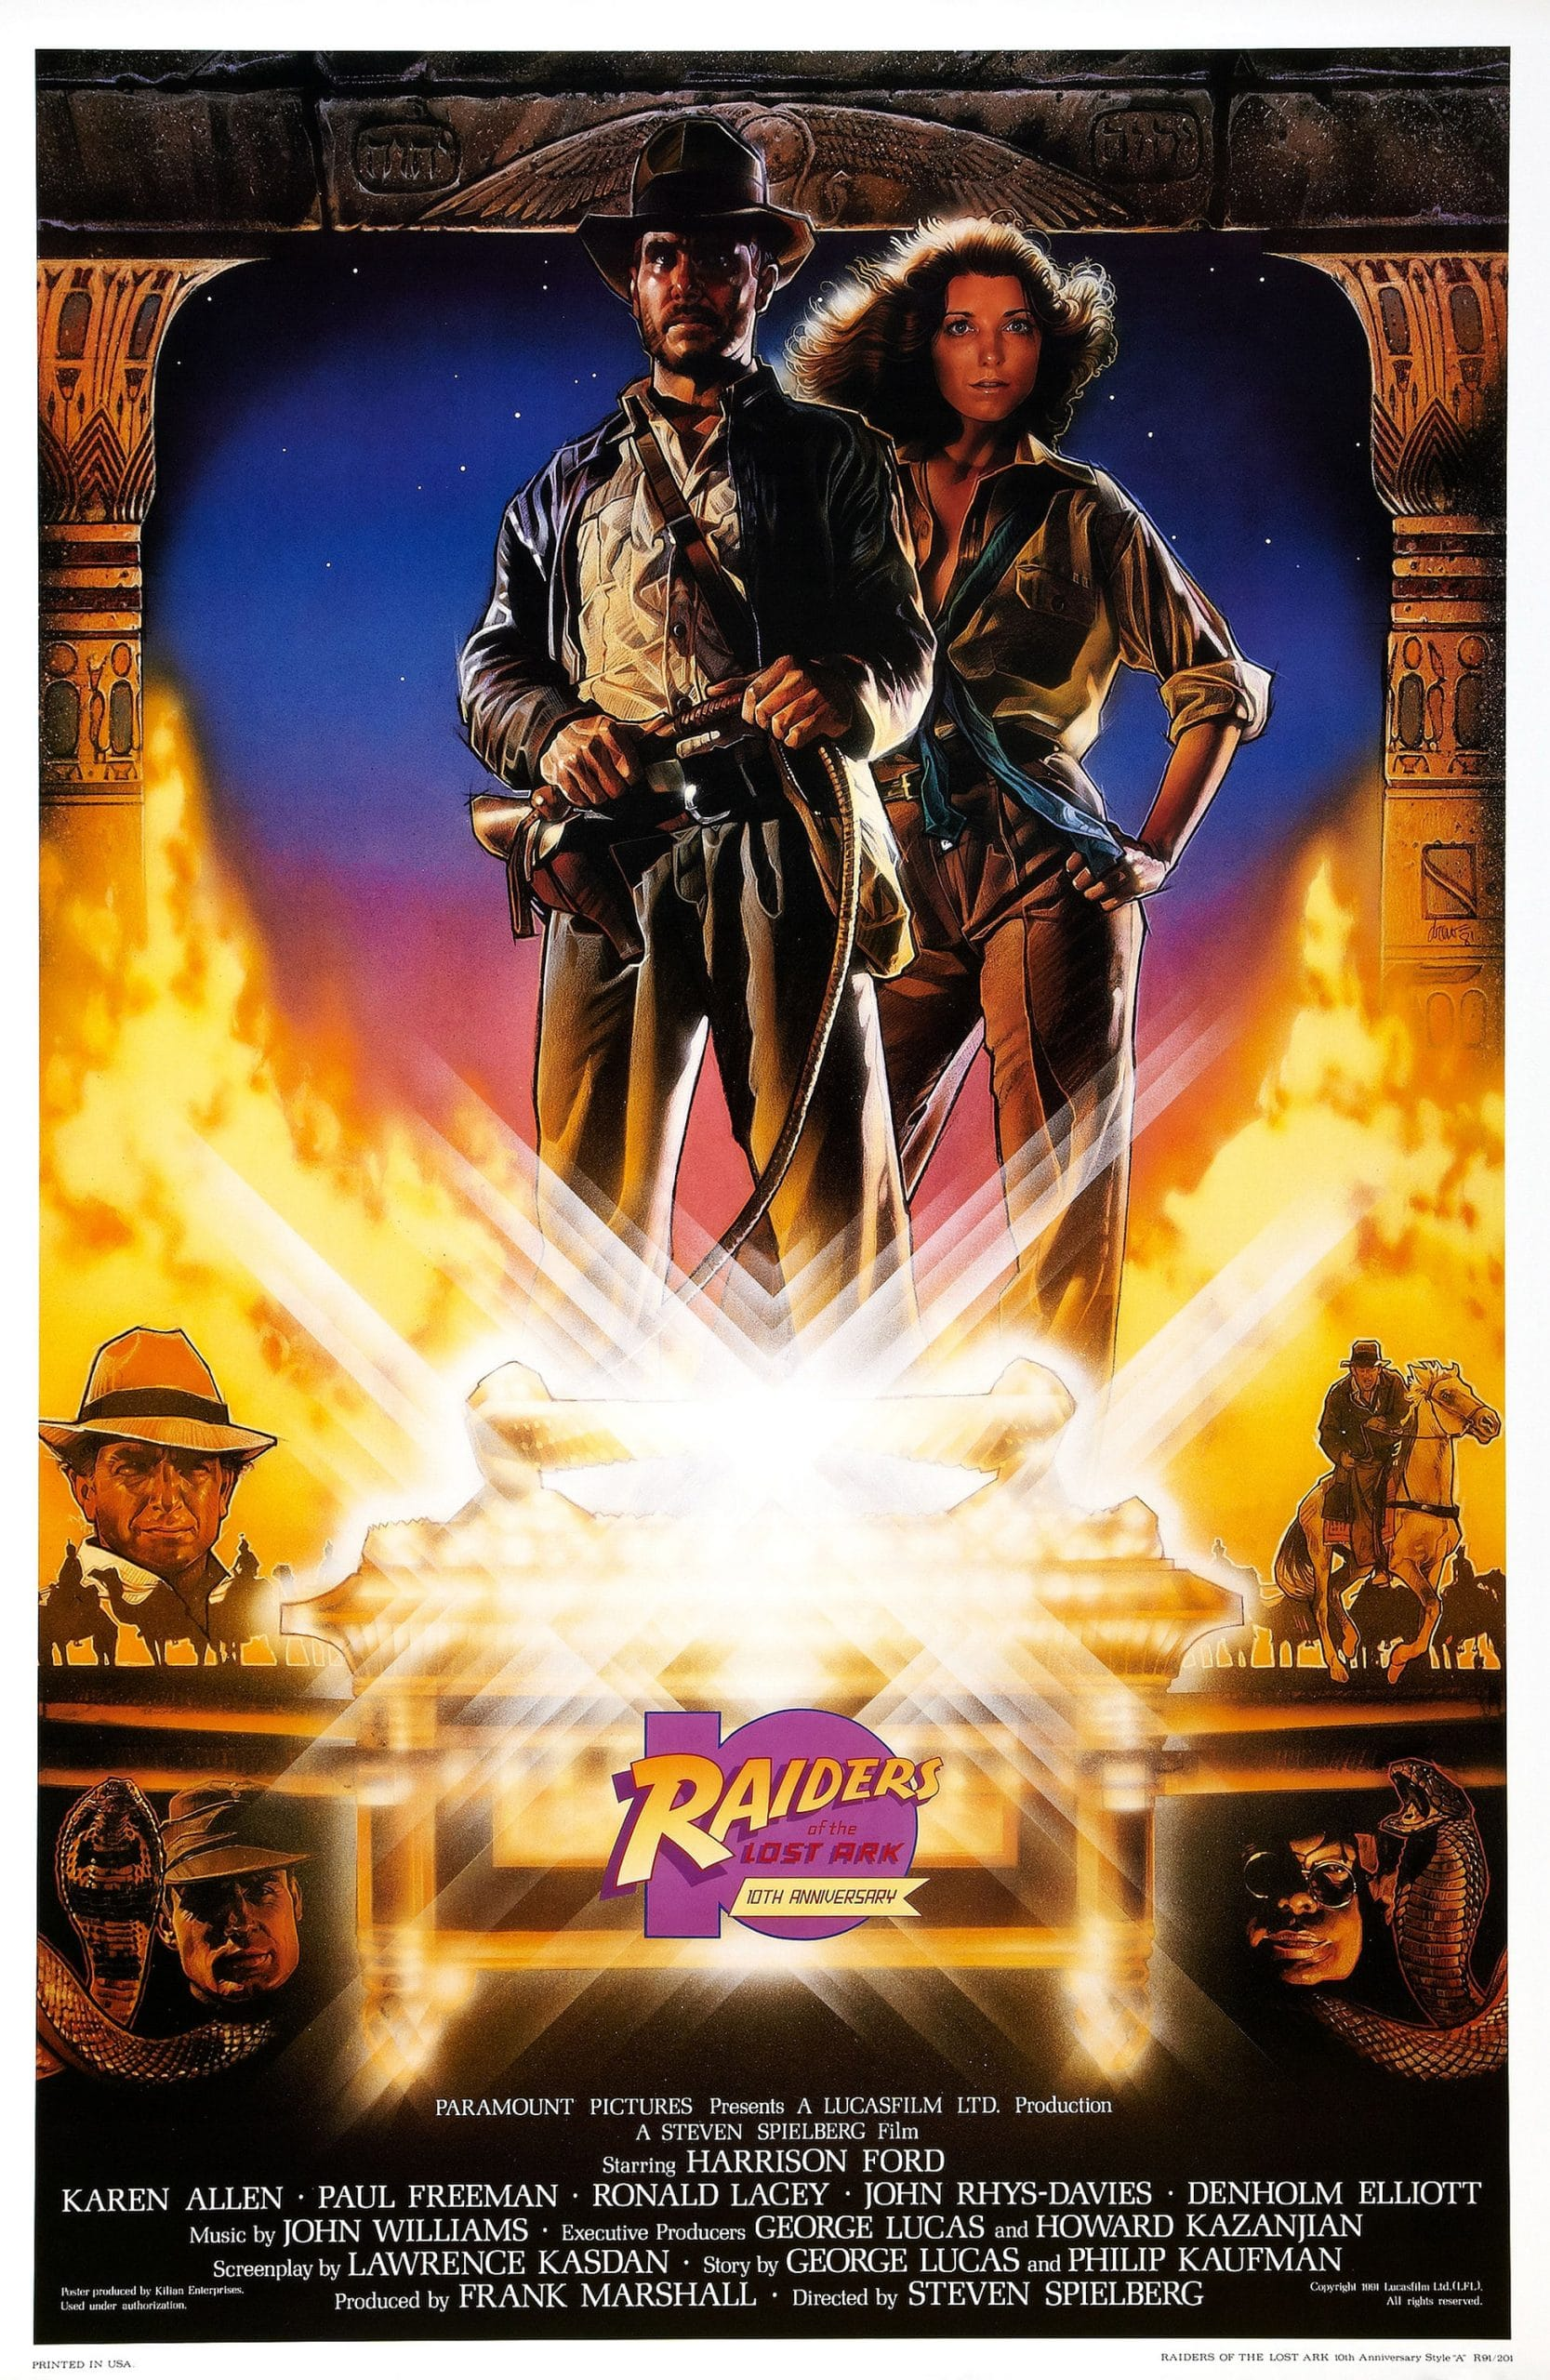 RAIDERS OF THE LOST ARK, US 10th anniversary re-issue poster, top, from left: Harrison Ford, Karen Allen, 1981